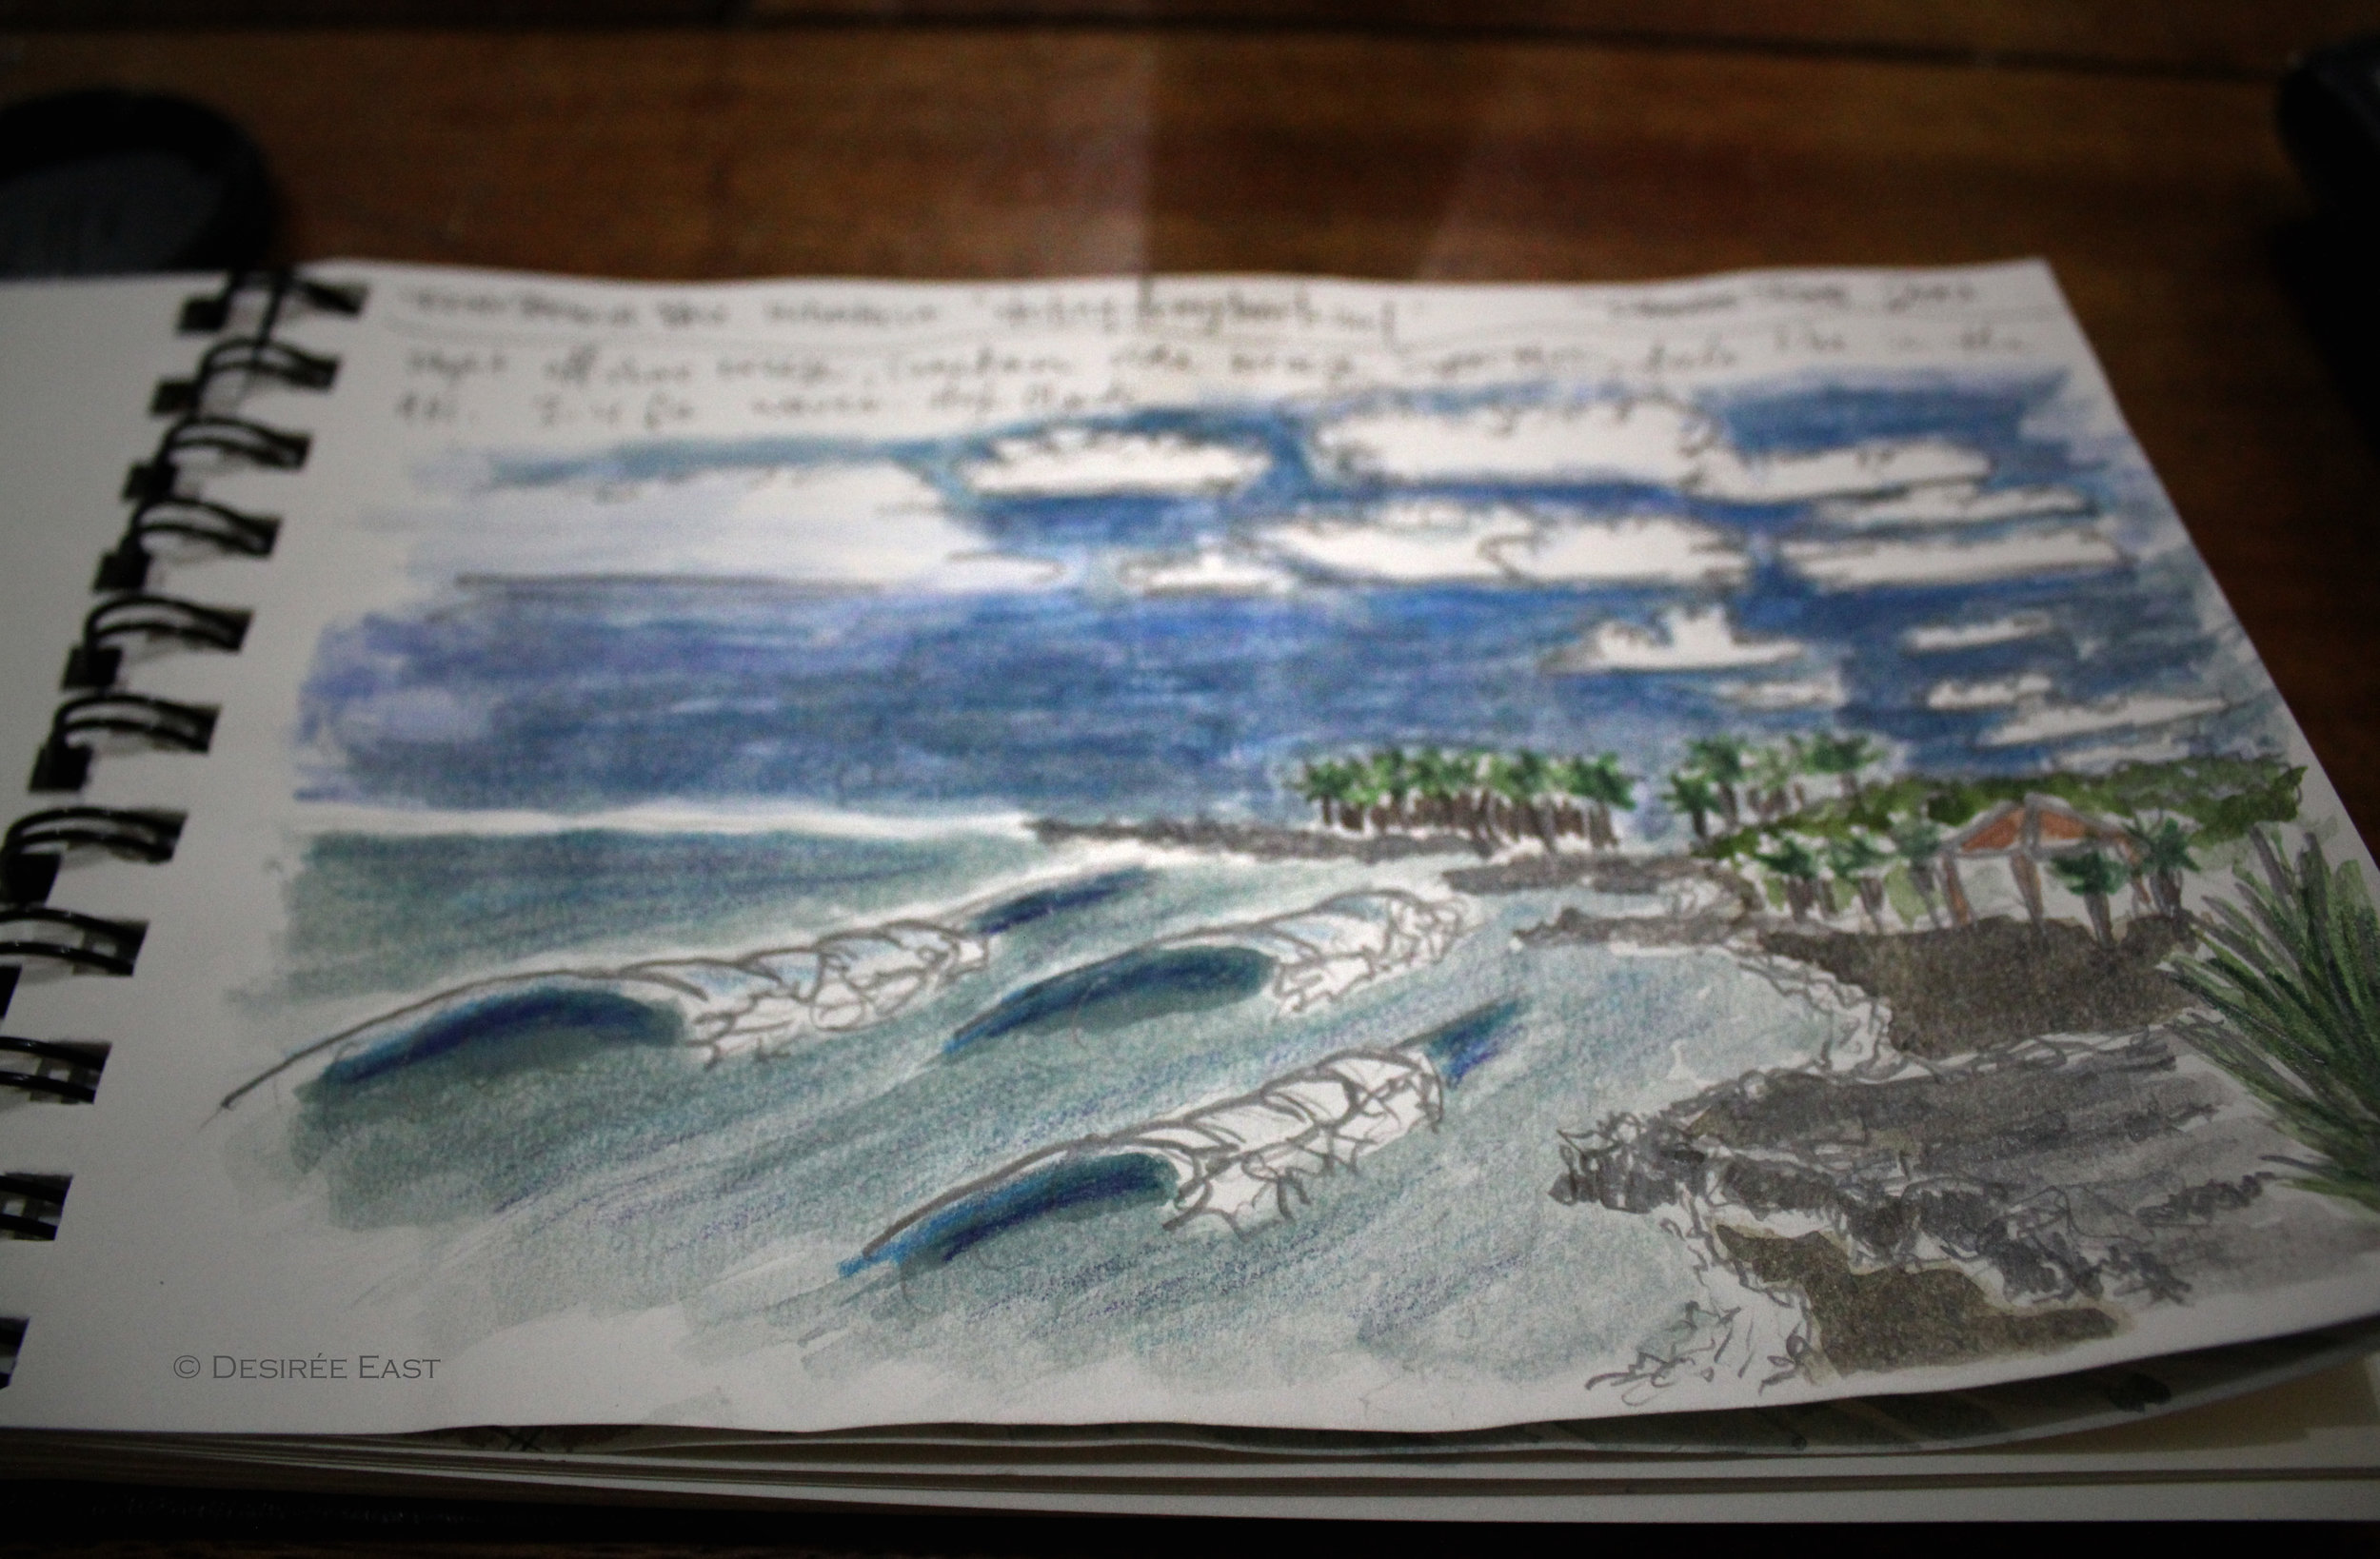 echo beach field sketch. canguu. bali, indonesia. travel journal by desiree east